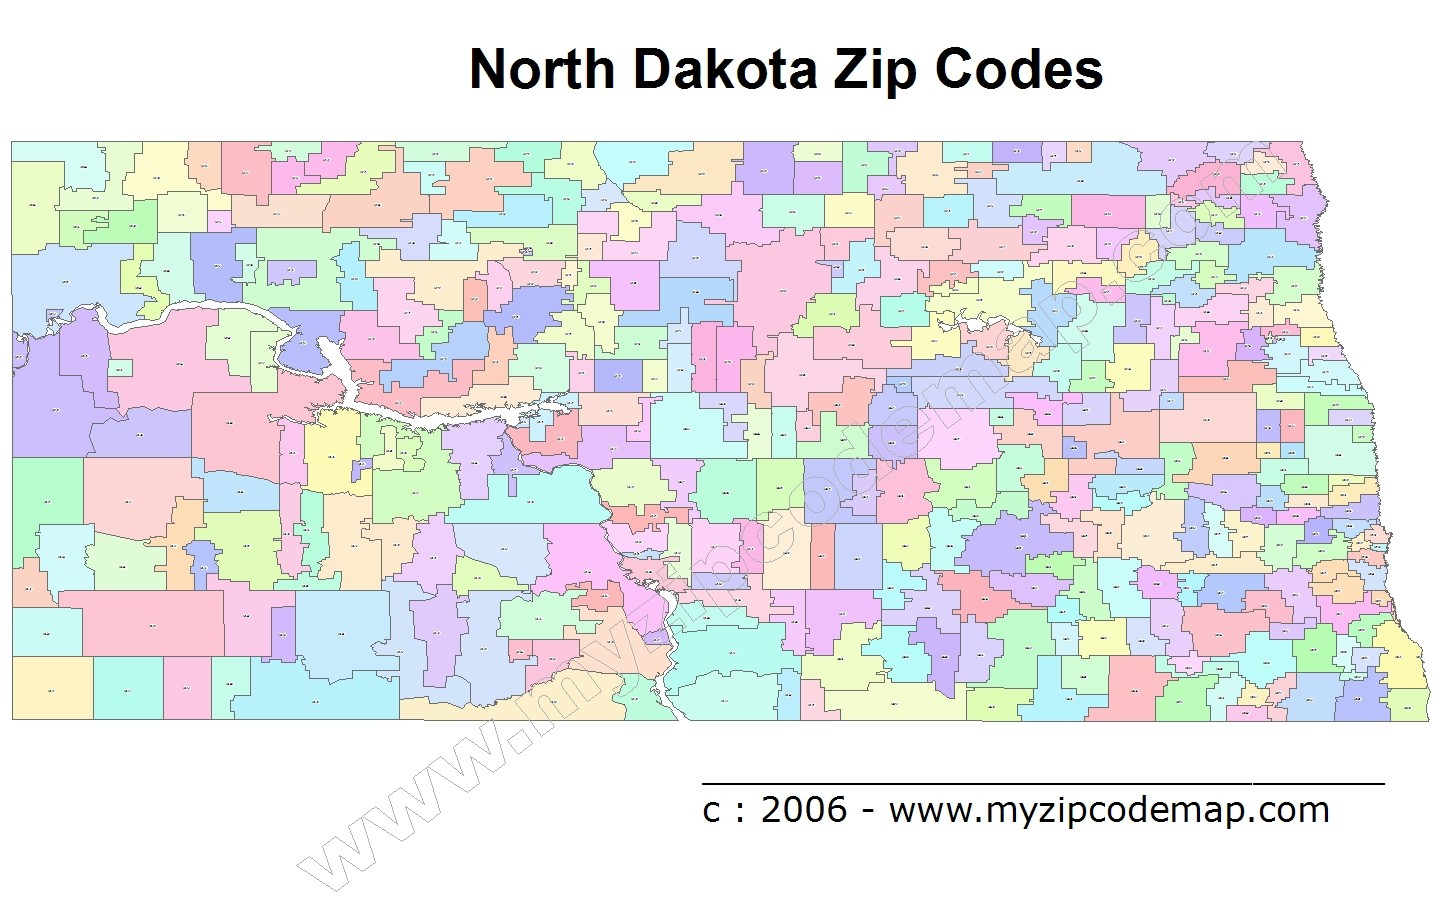 North Dakota (ND) Zip Code Map